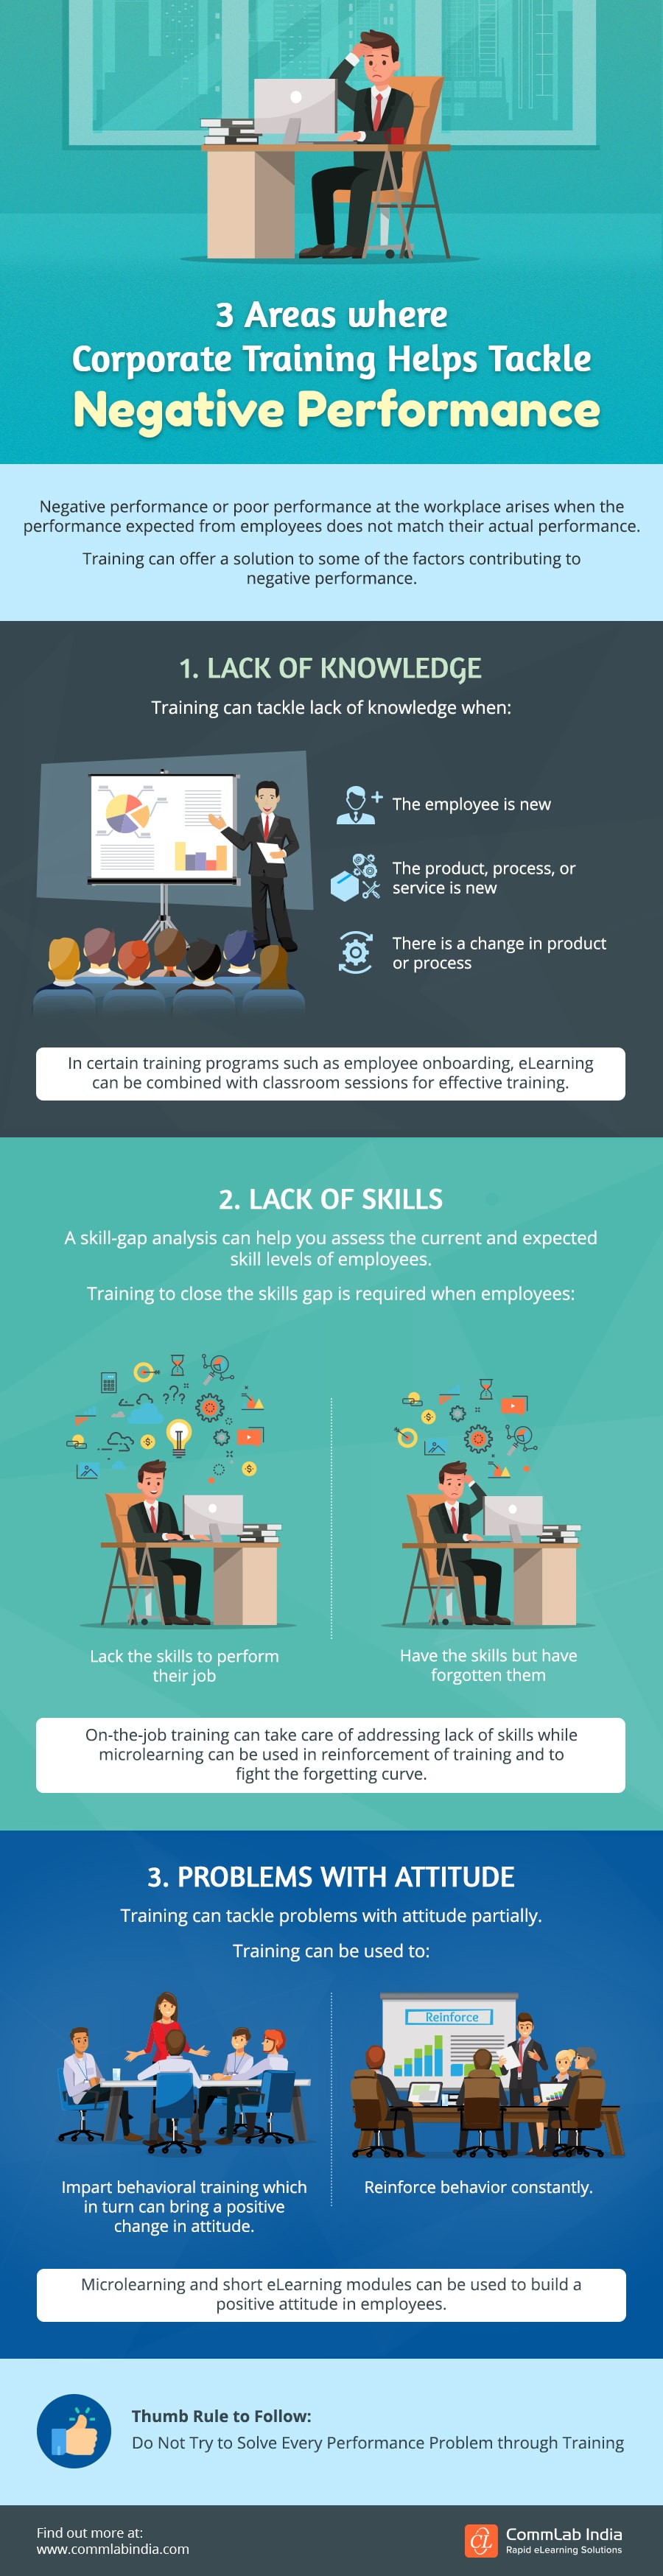 3 Areas Where Corporate Training Helps Tackle Negative Performance [Infographic]